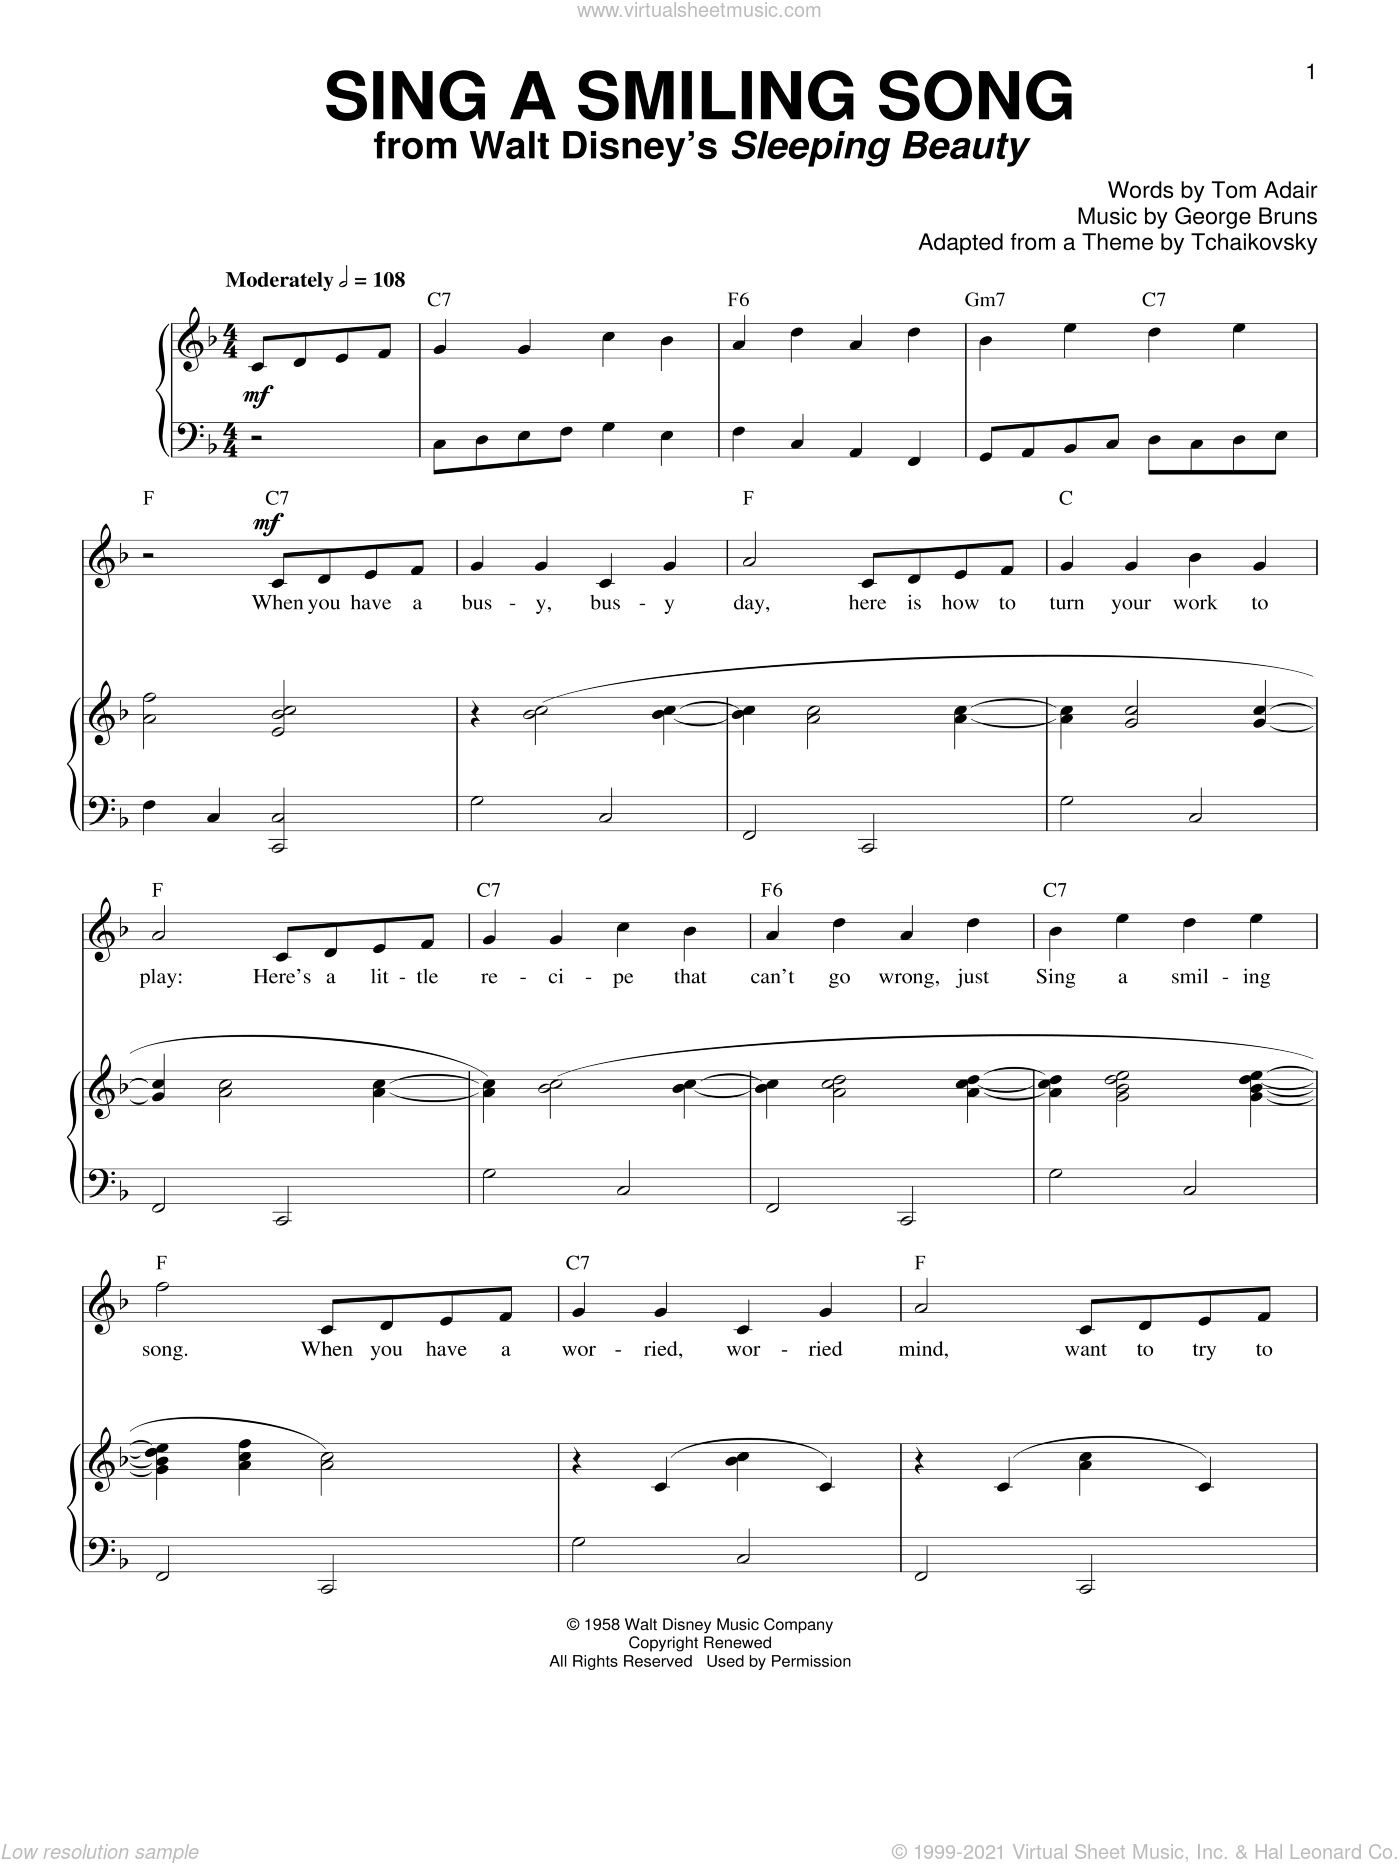 Sing A Smiling Song sheet music for voice and piano by George Bruns and Tom Adair